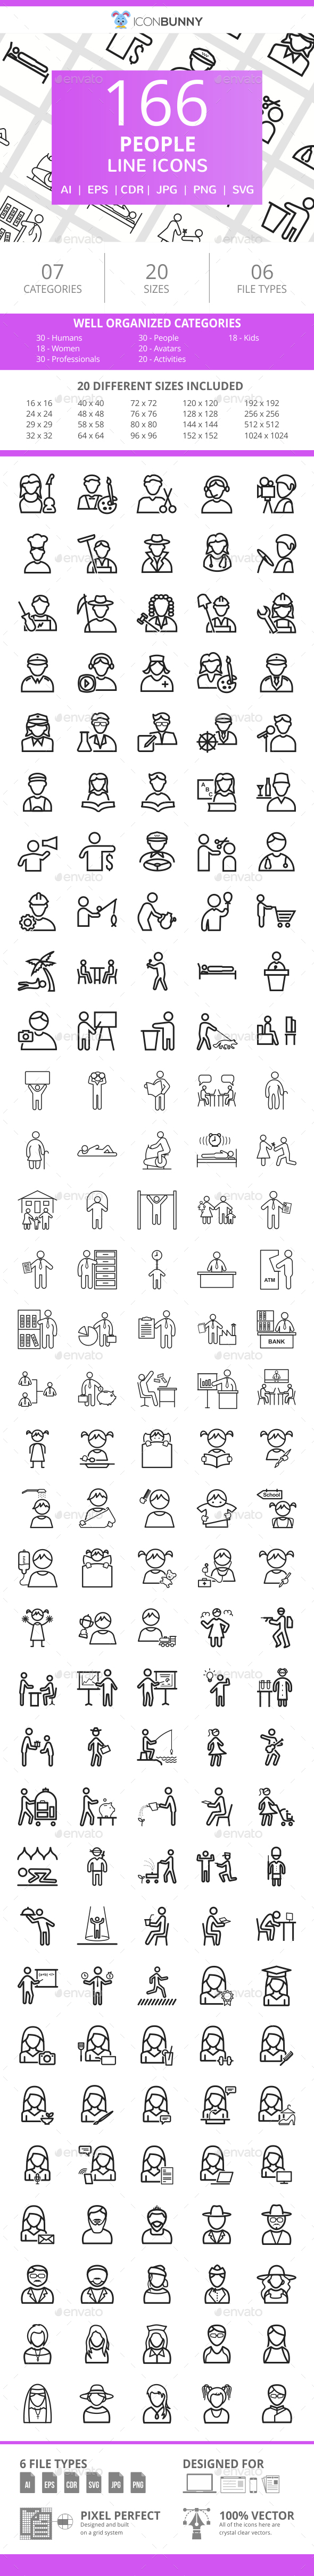 166 People Line Icons - Icons